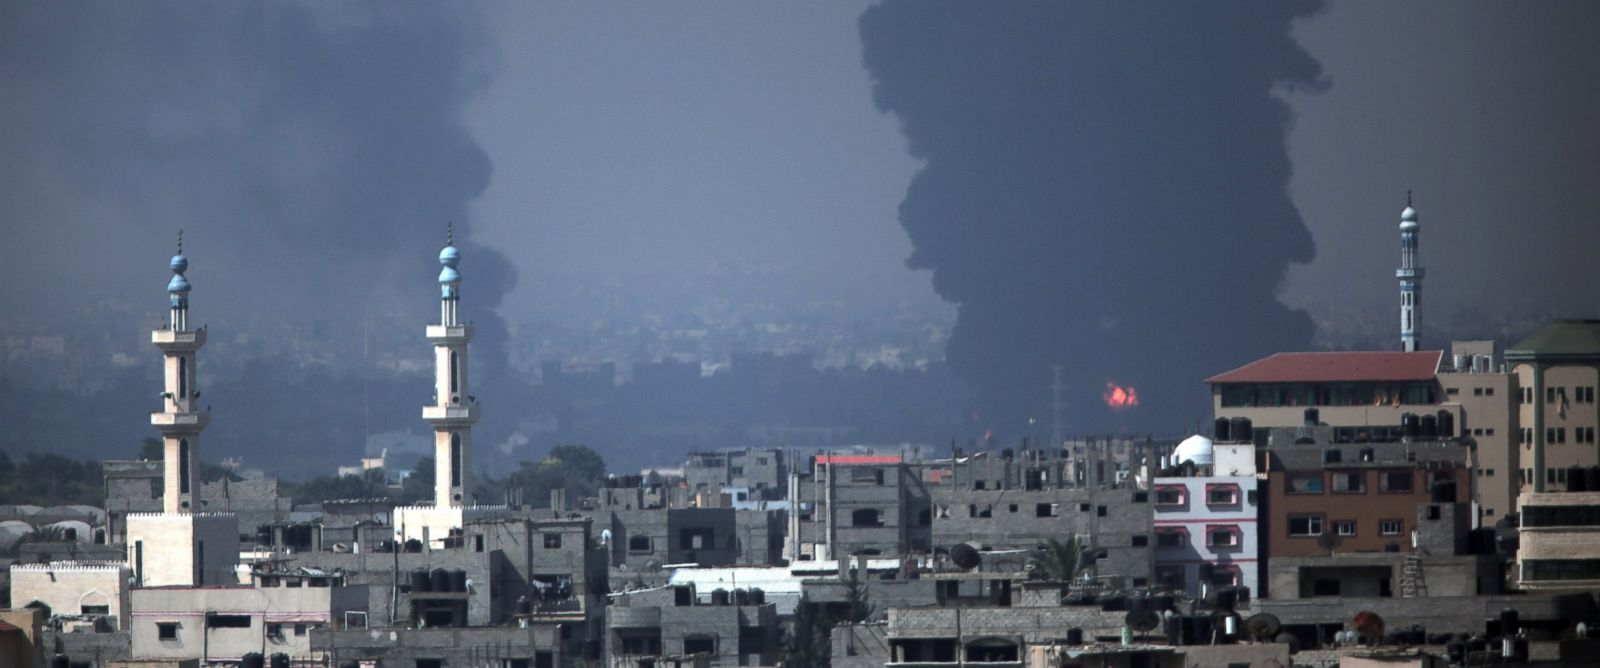 PHOTO: Smoke rises from Gazas power plant after it was hit by Israeli strikes in the Nusayrat refugee camp, central Gaza Strip, July 29, 2014.